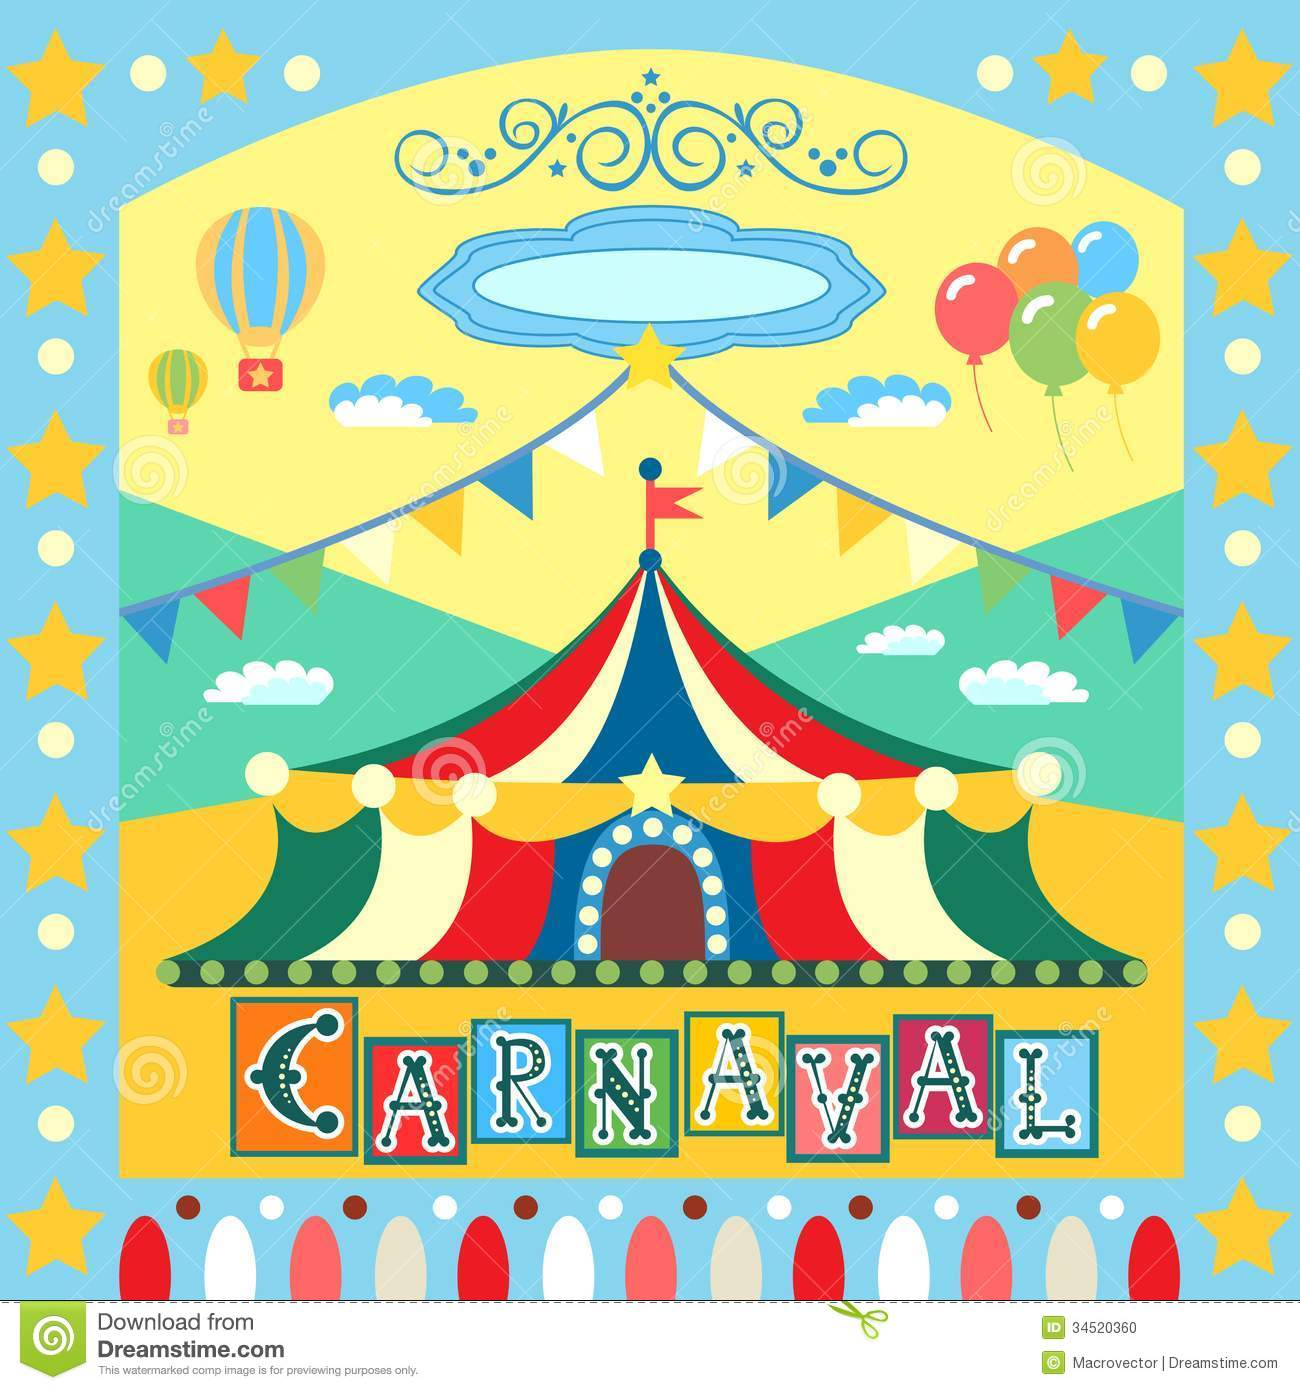 Carnival Poster Stock Photo - Image: 34520360